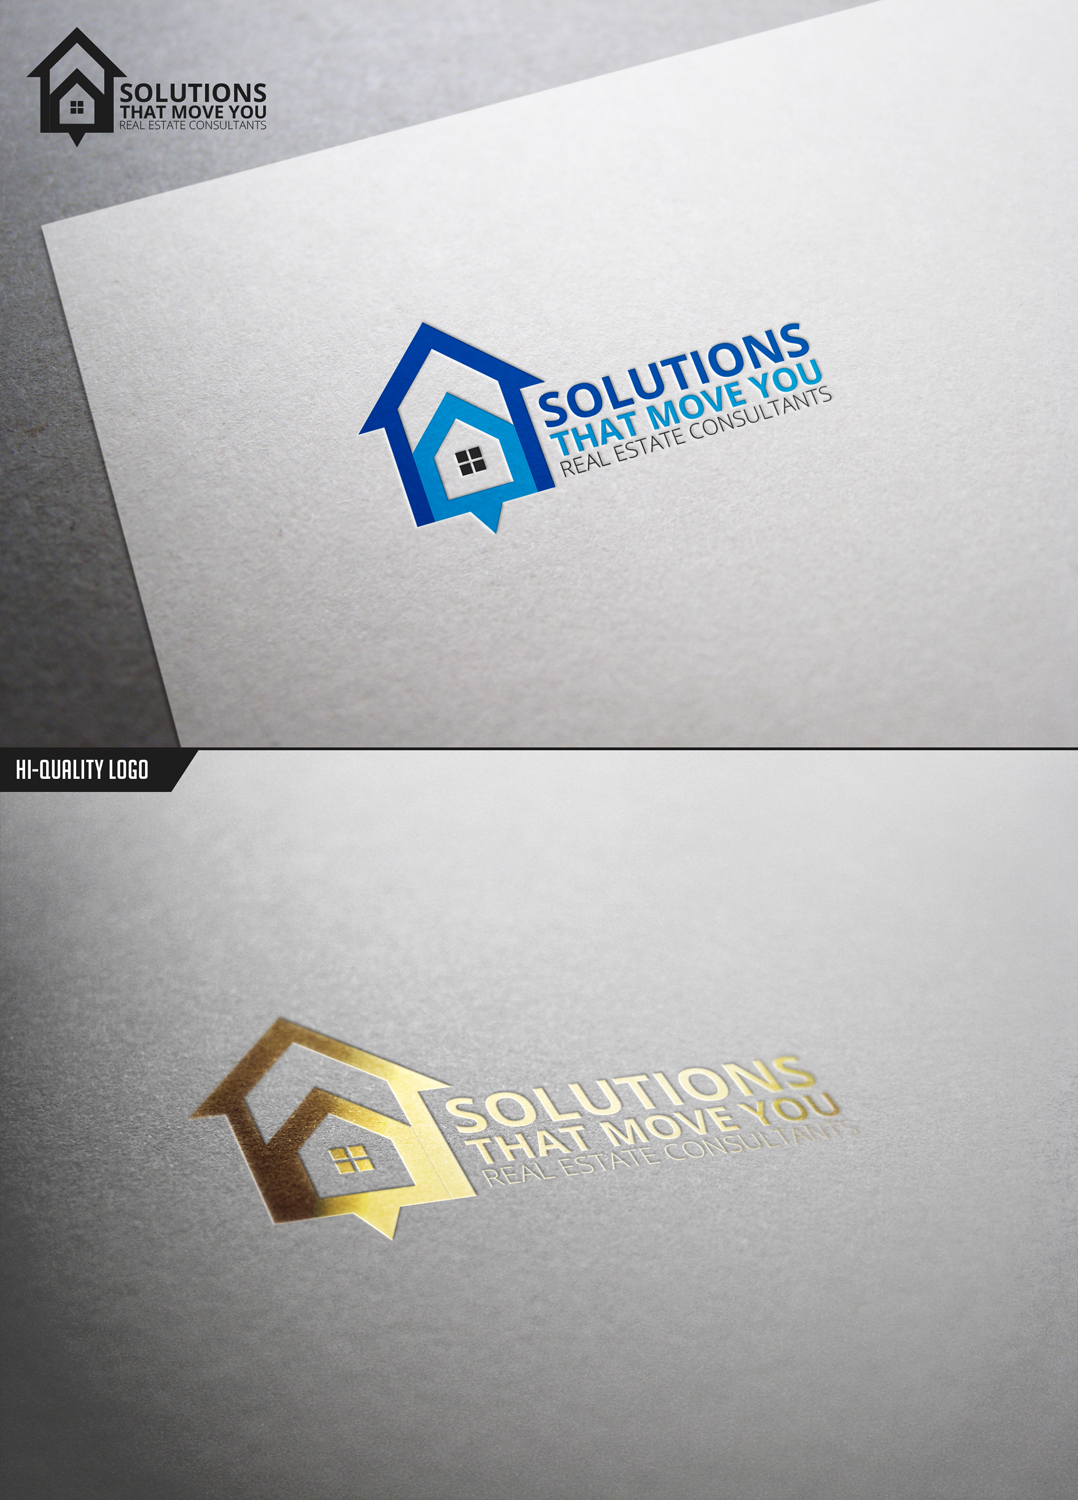 Logo Design by Virgilio Pineda III - Entry No. 77 in the Logo Design Contest Imaginative Logo Design for Solutions That Move You.